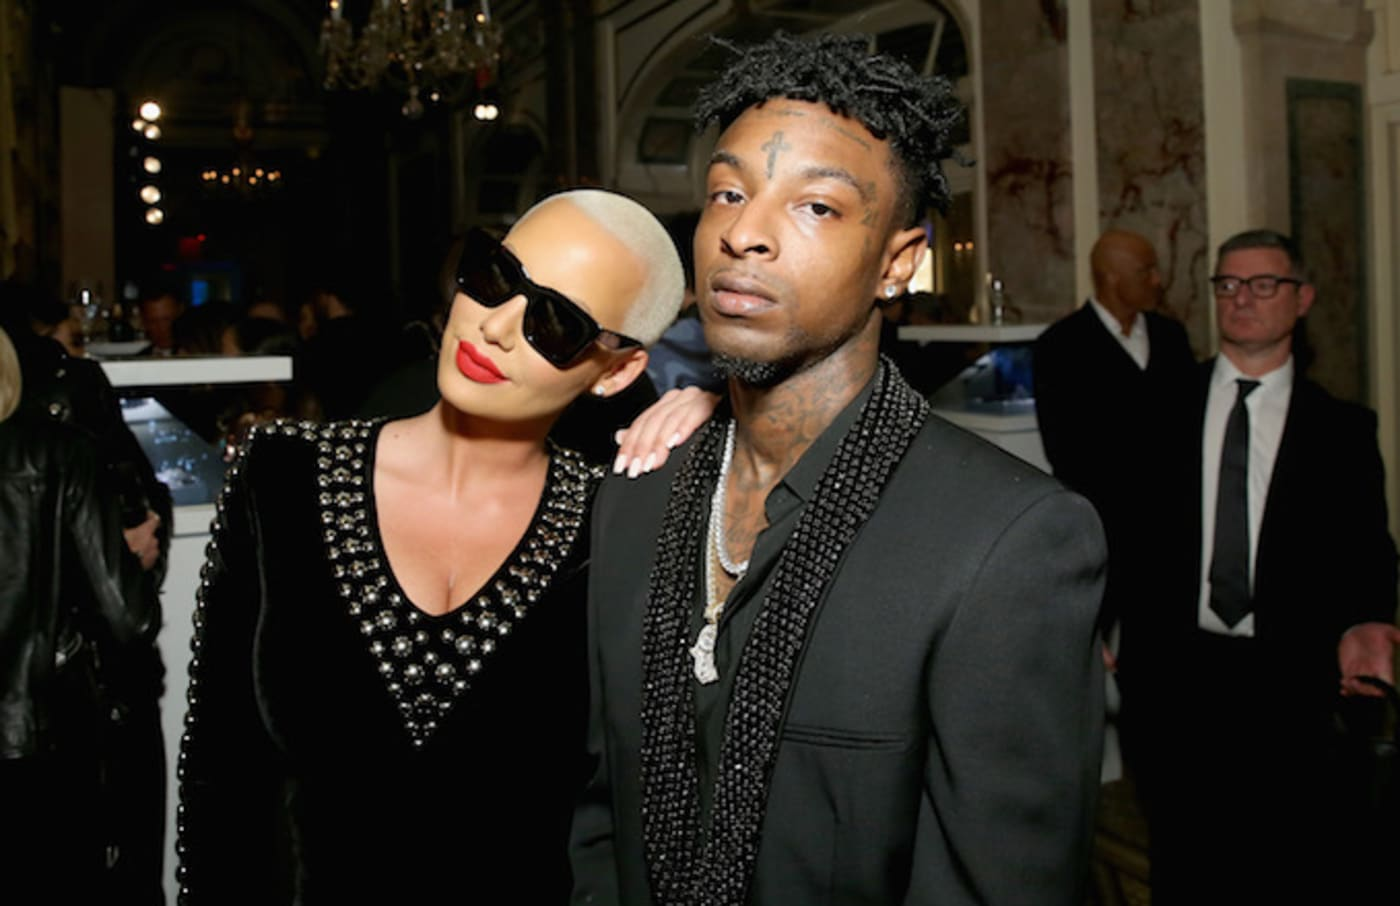 Amber Rose and 21 Savage